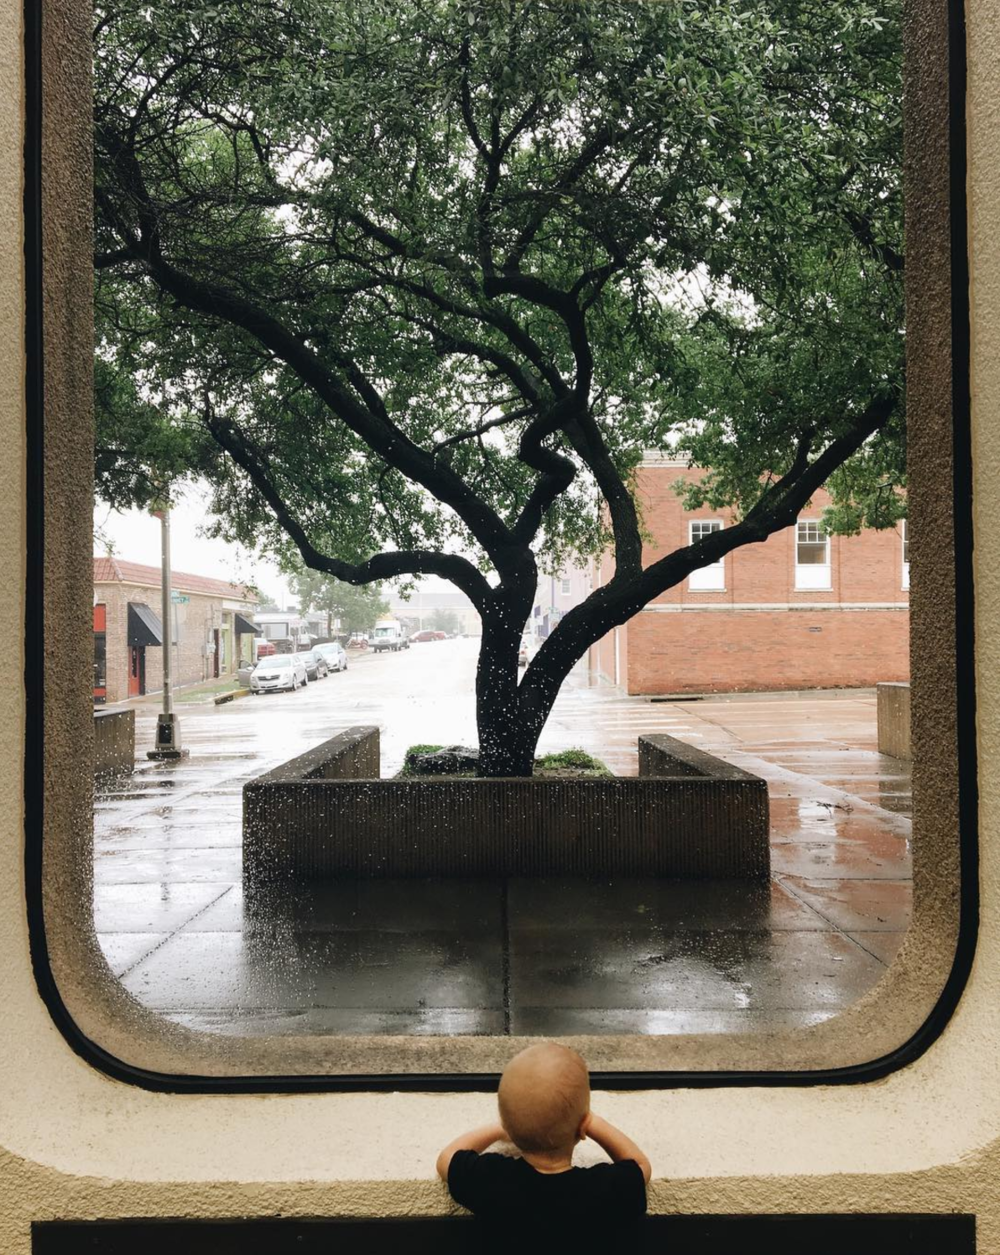 Looking out at the rain and a tree from the post office. Photo by @jadewinterdays.